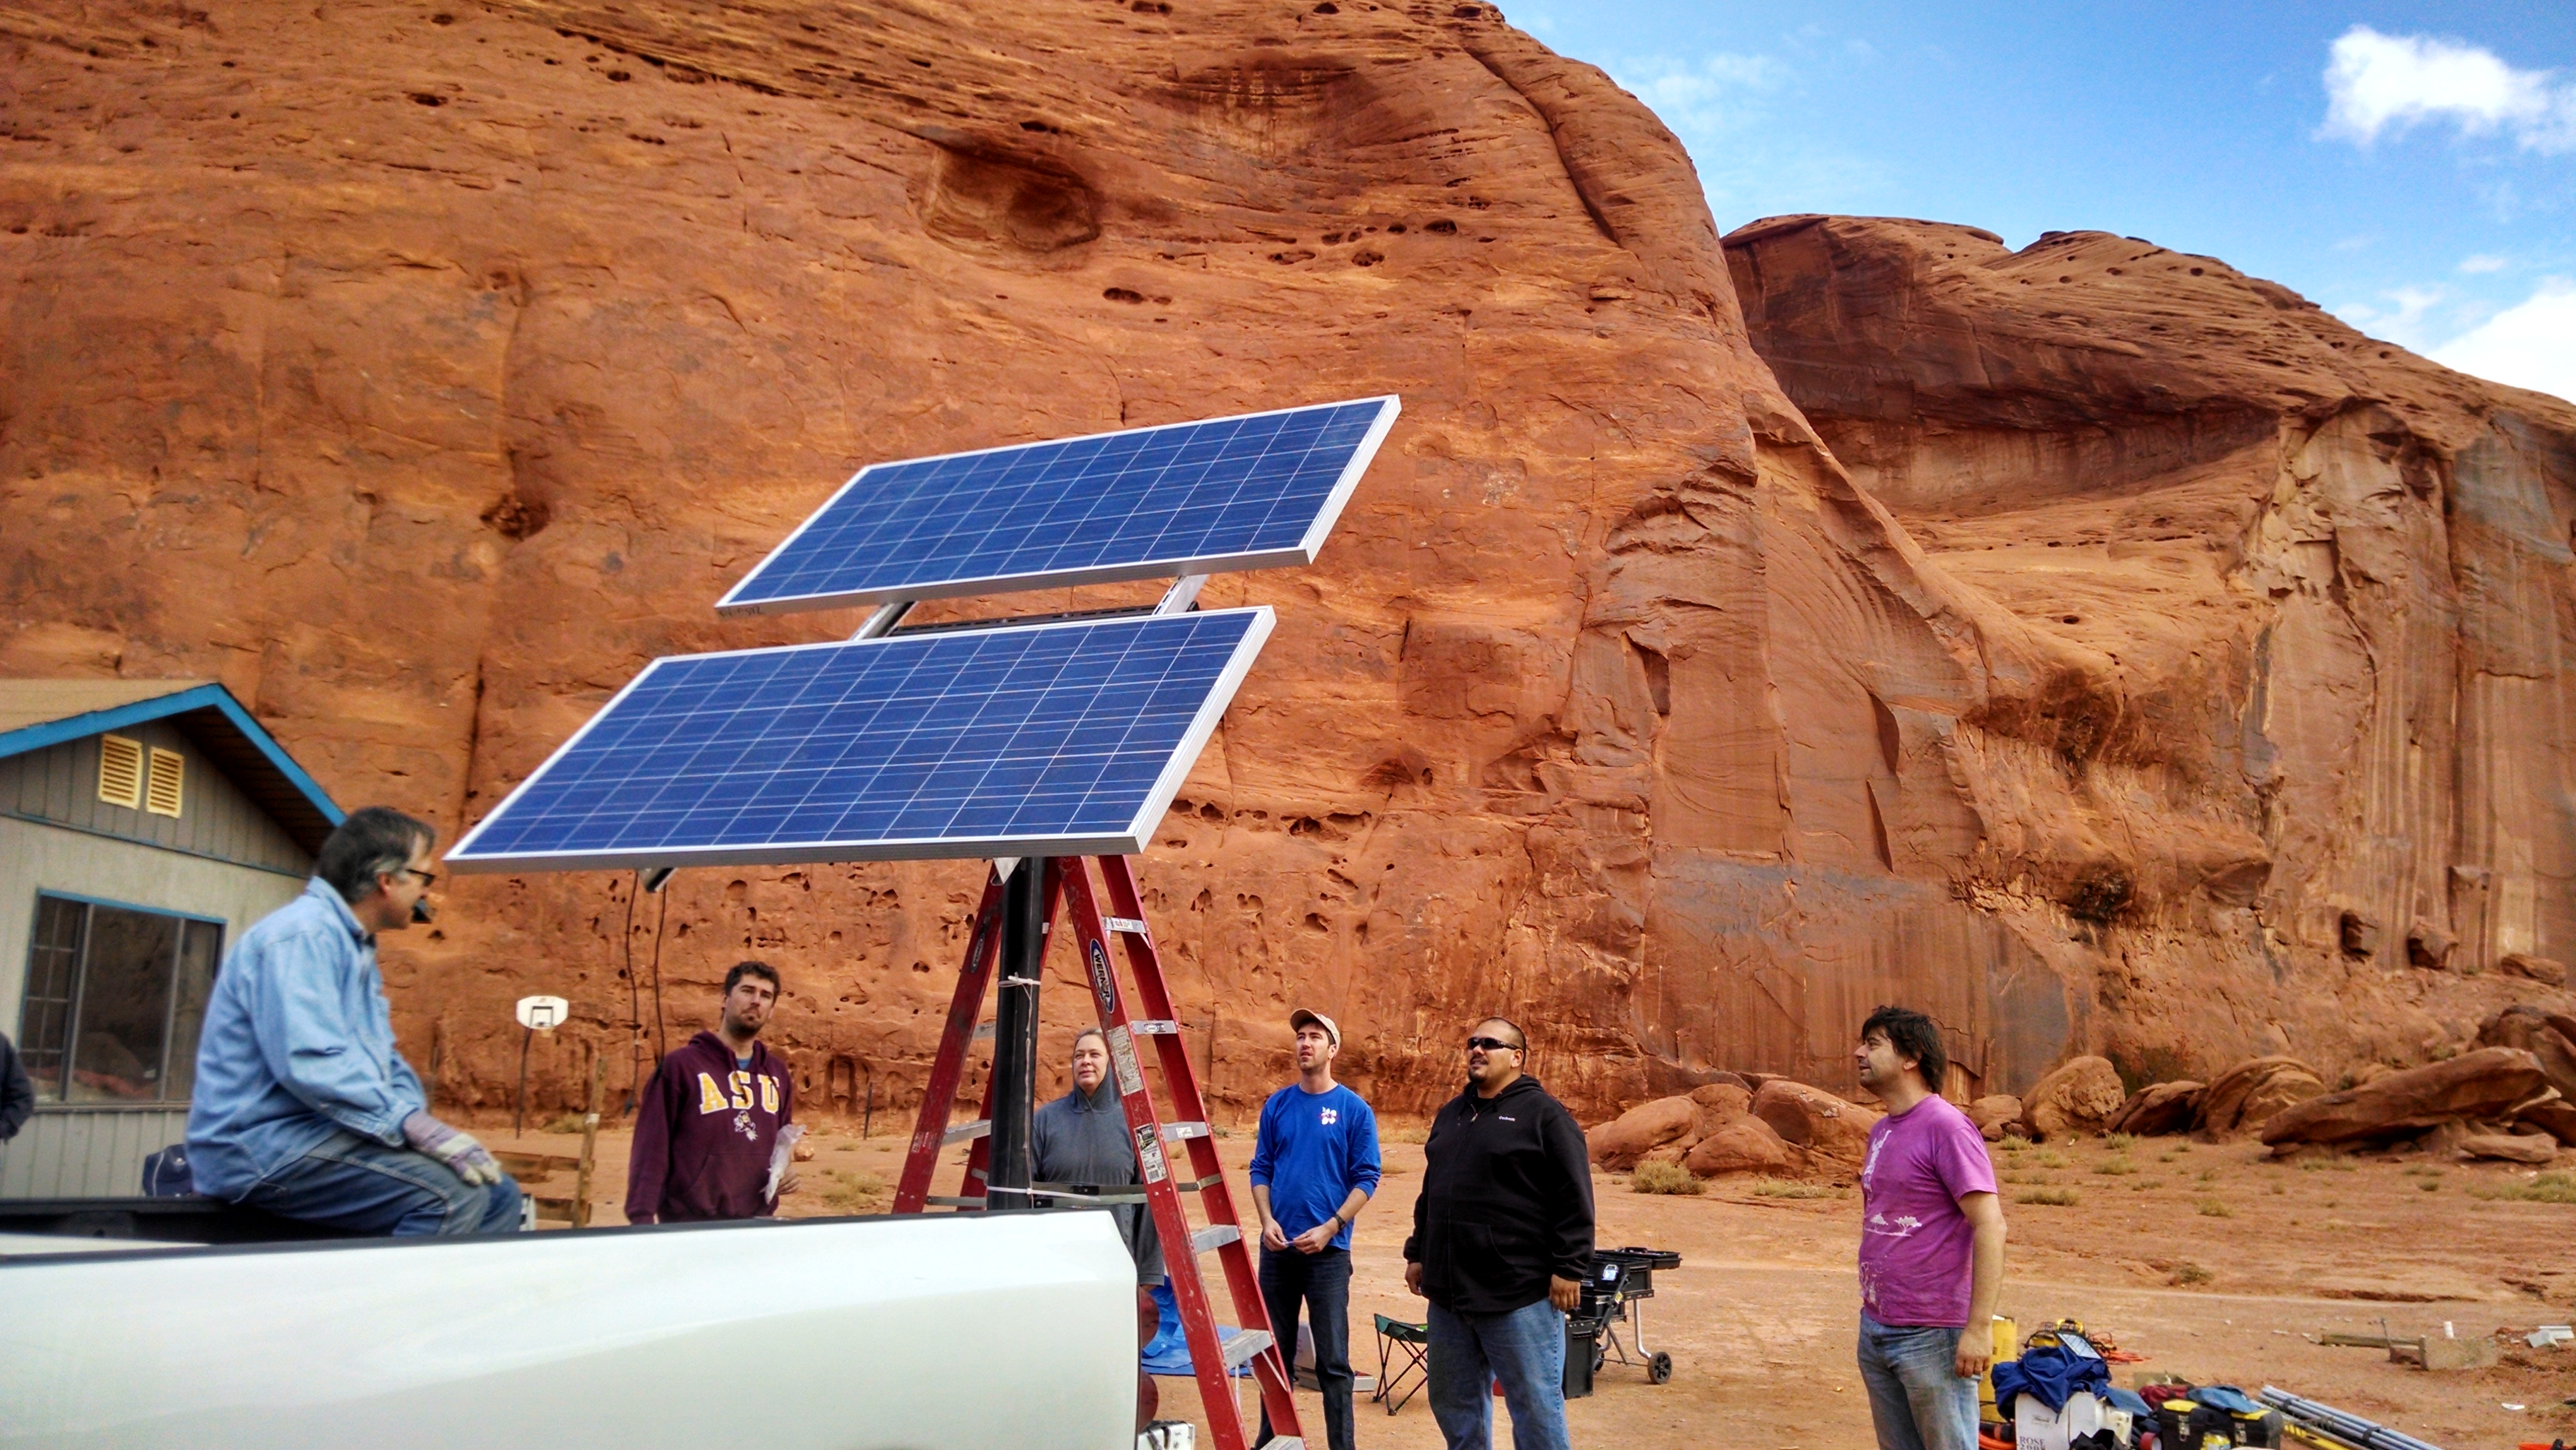 QESST Scholars and faculty install a solar PV system in Monument Valley, Navajo Tribal Park